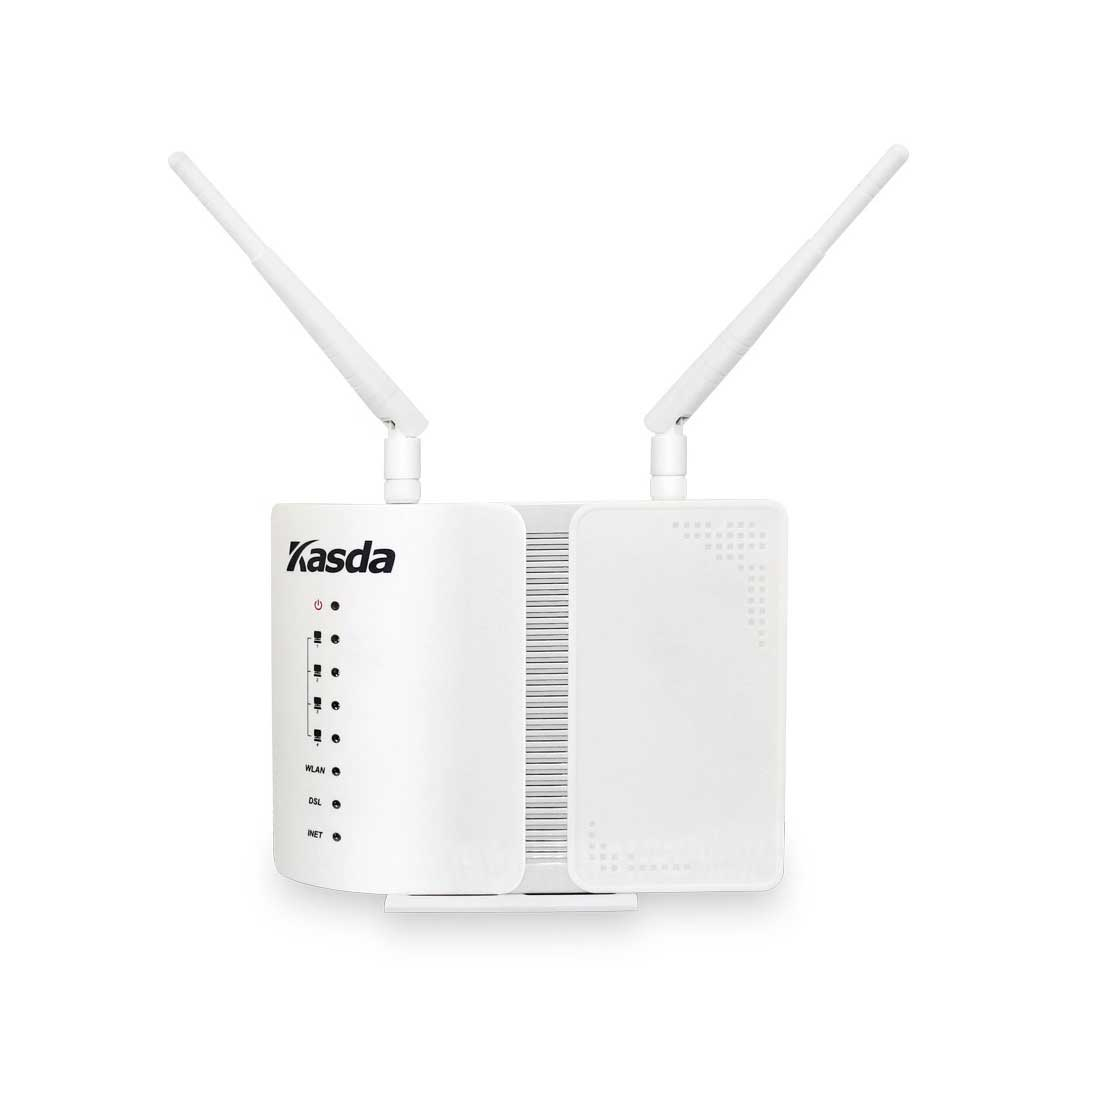 Kasda Wireless ADSL2+ VoIP Gateway KW5863